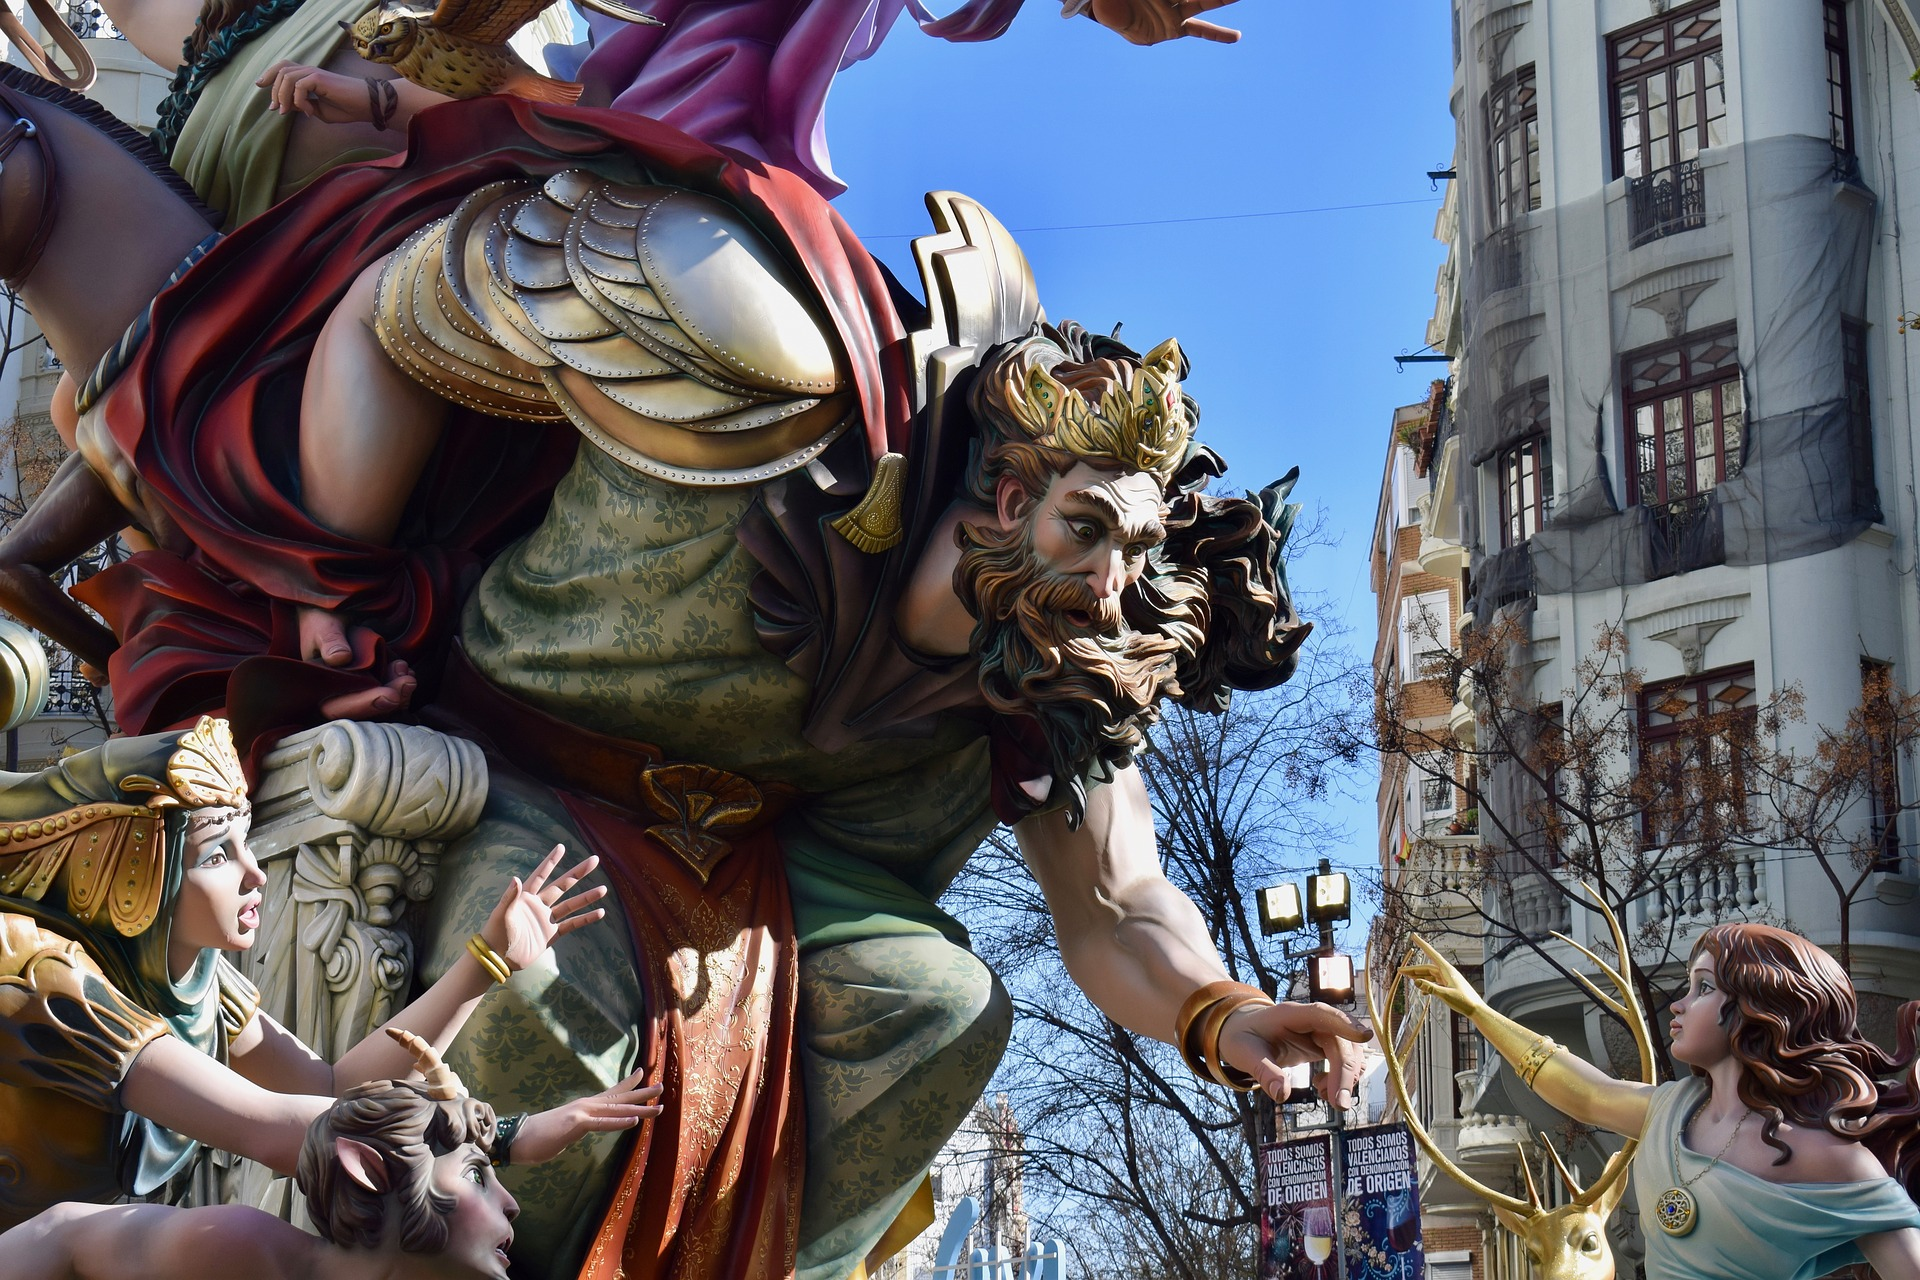 The Valencian Fallas: tradition, satire and art